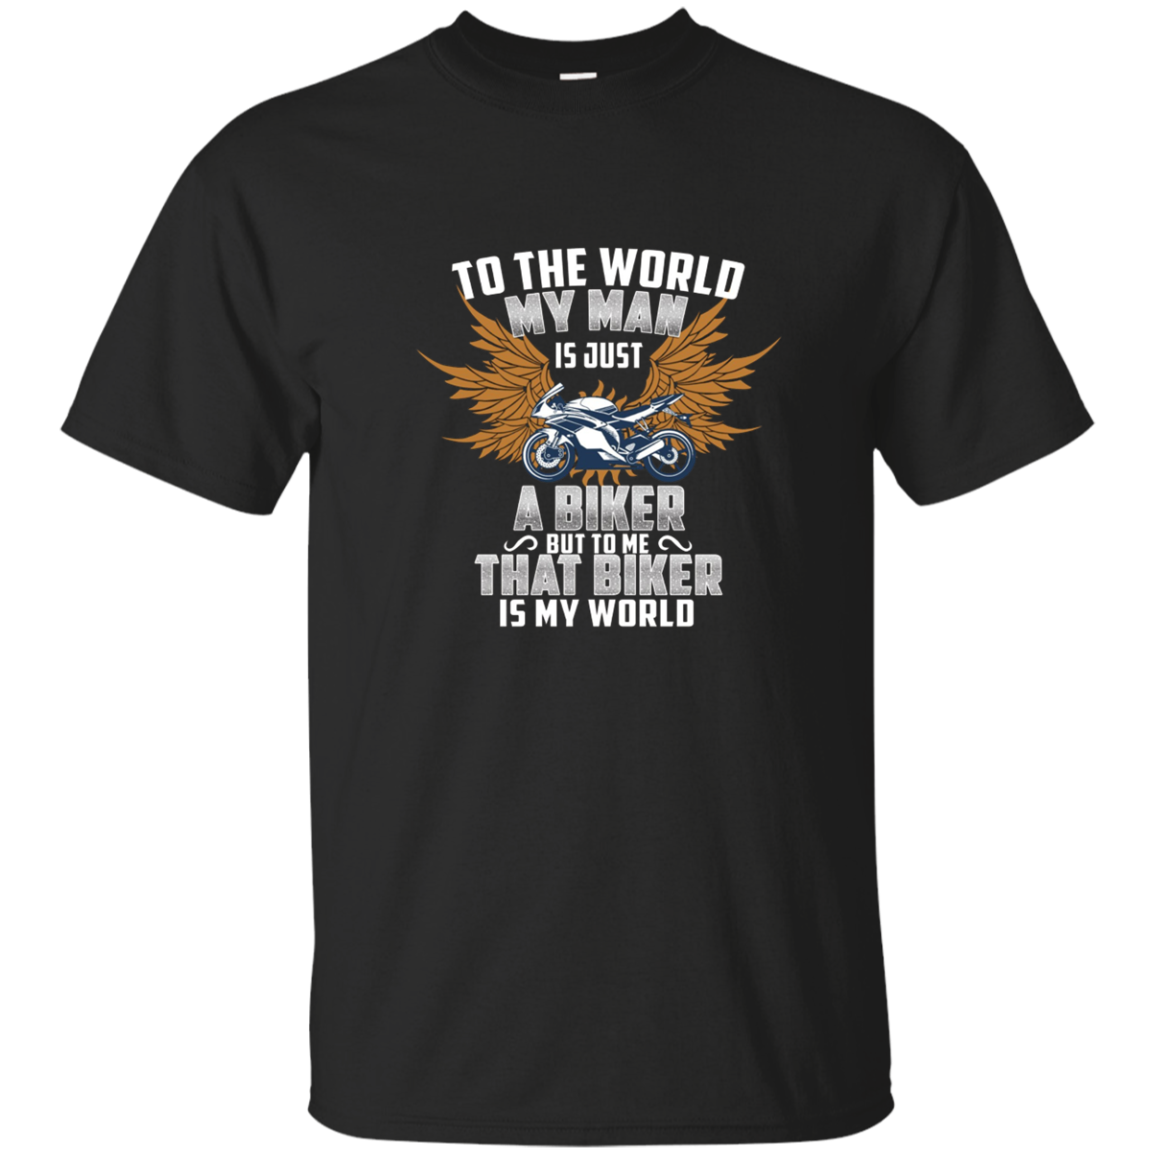 The Biker is My World Tshirt for men, woman who are biker